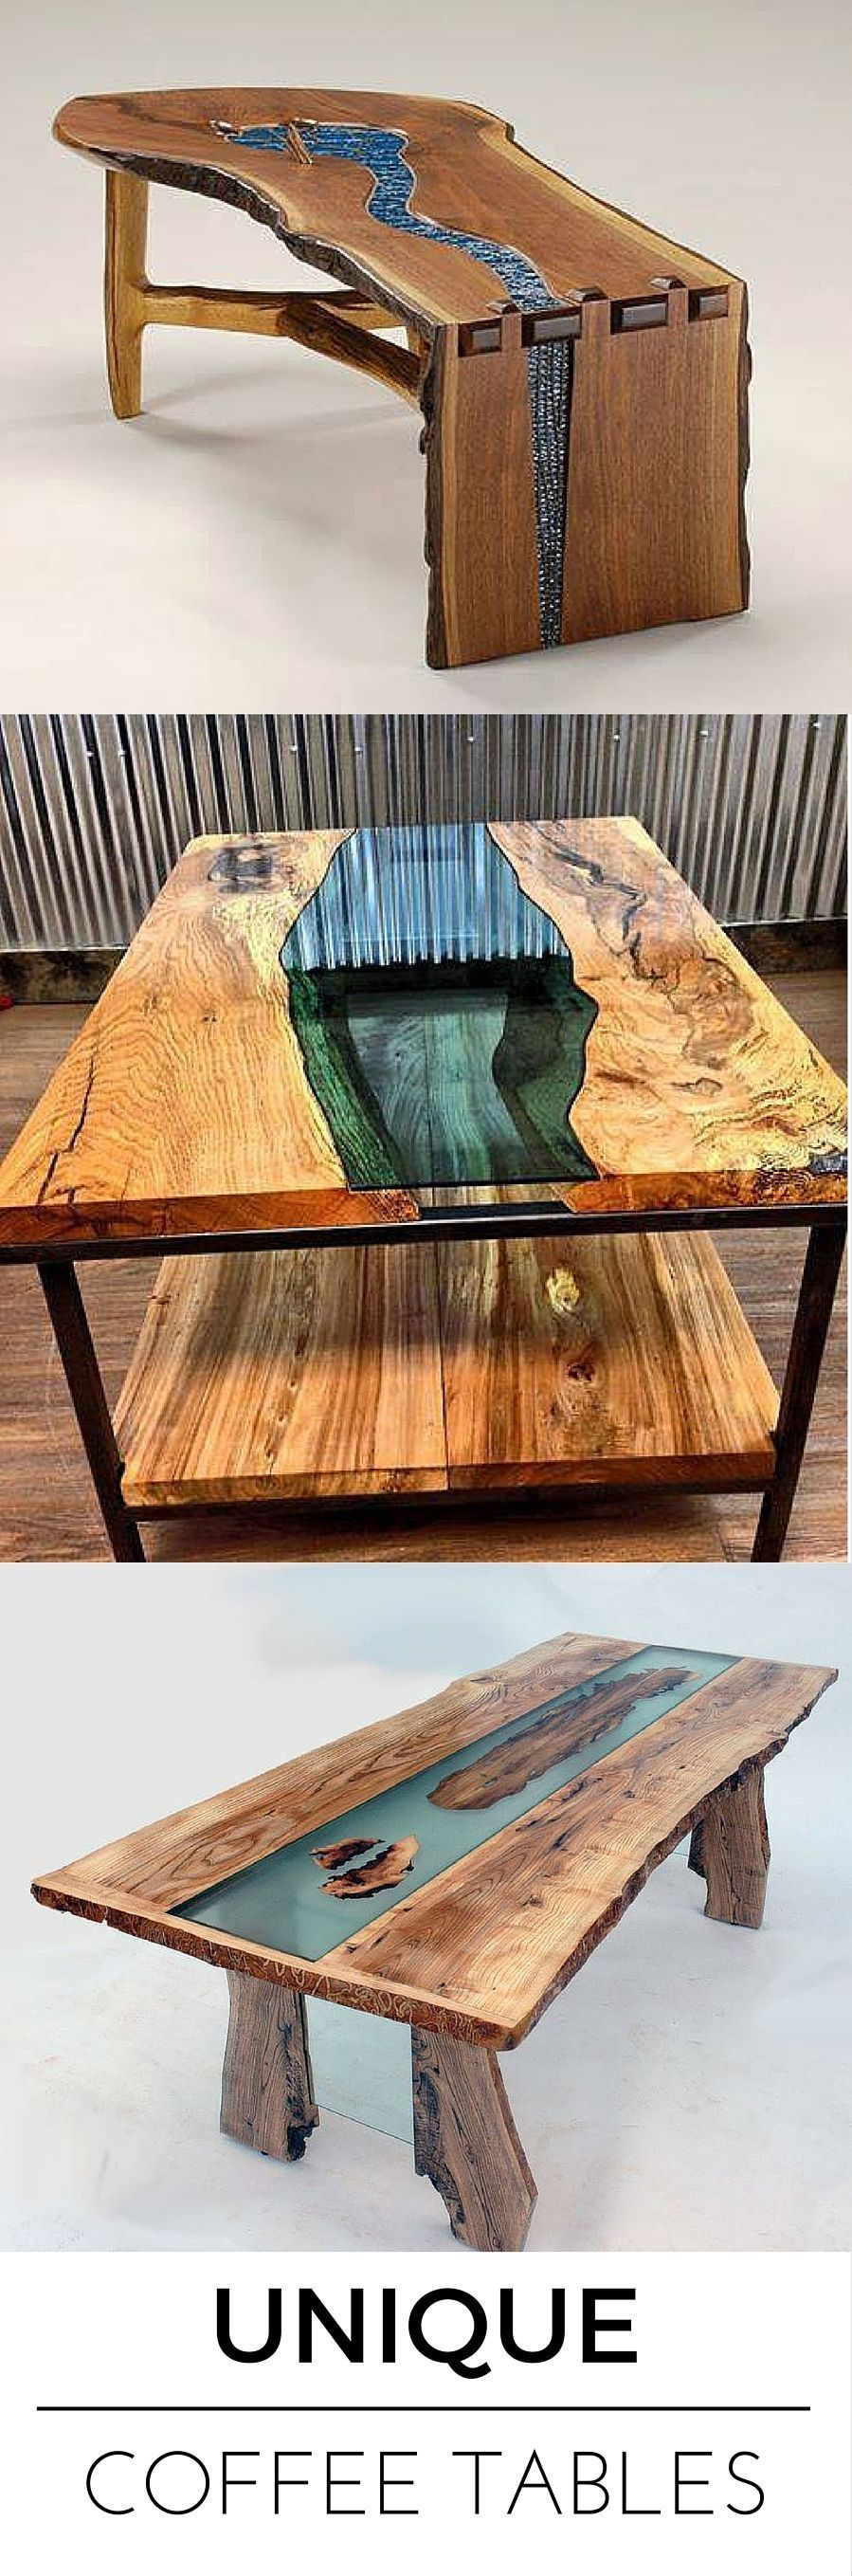 unique coffee tables styling ideas for your living room wood